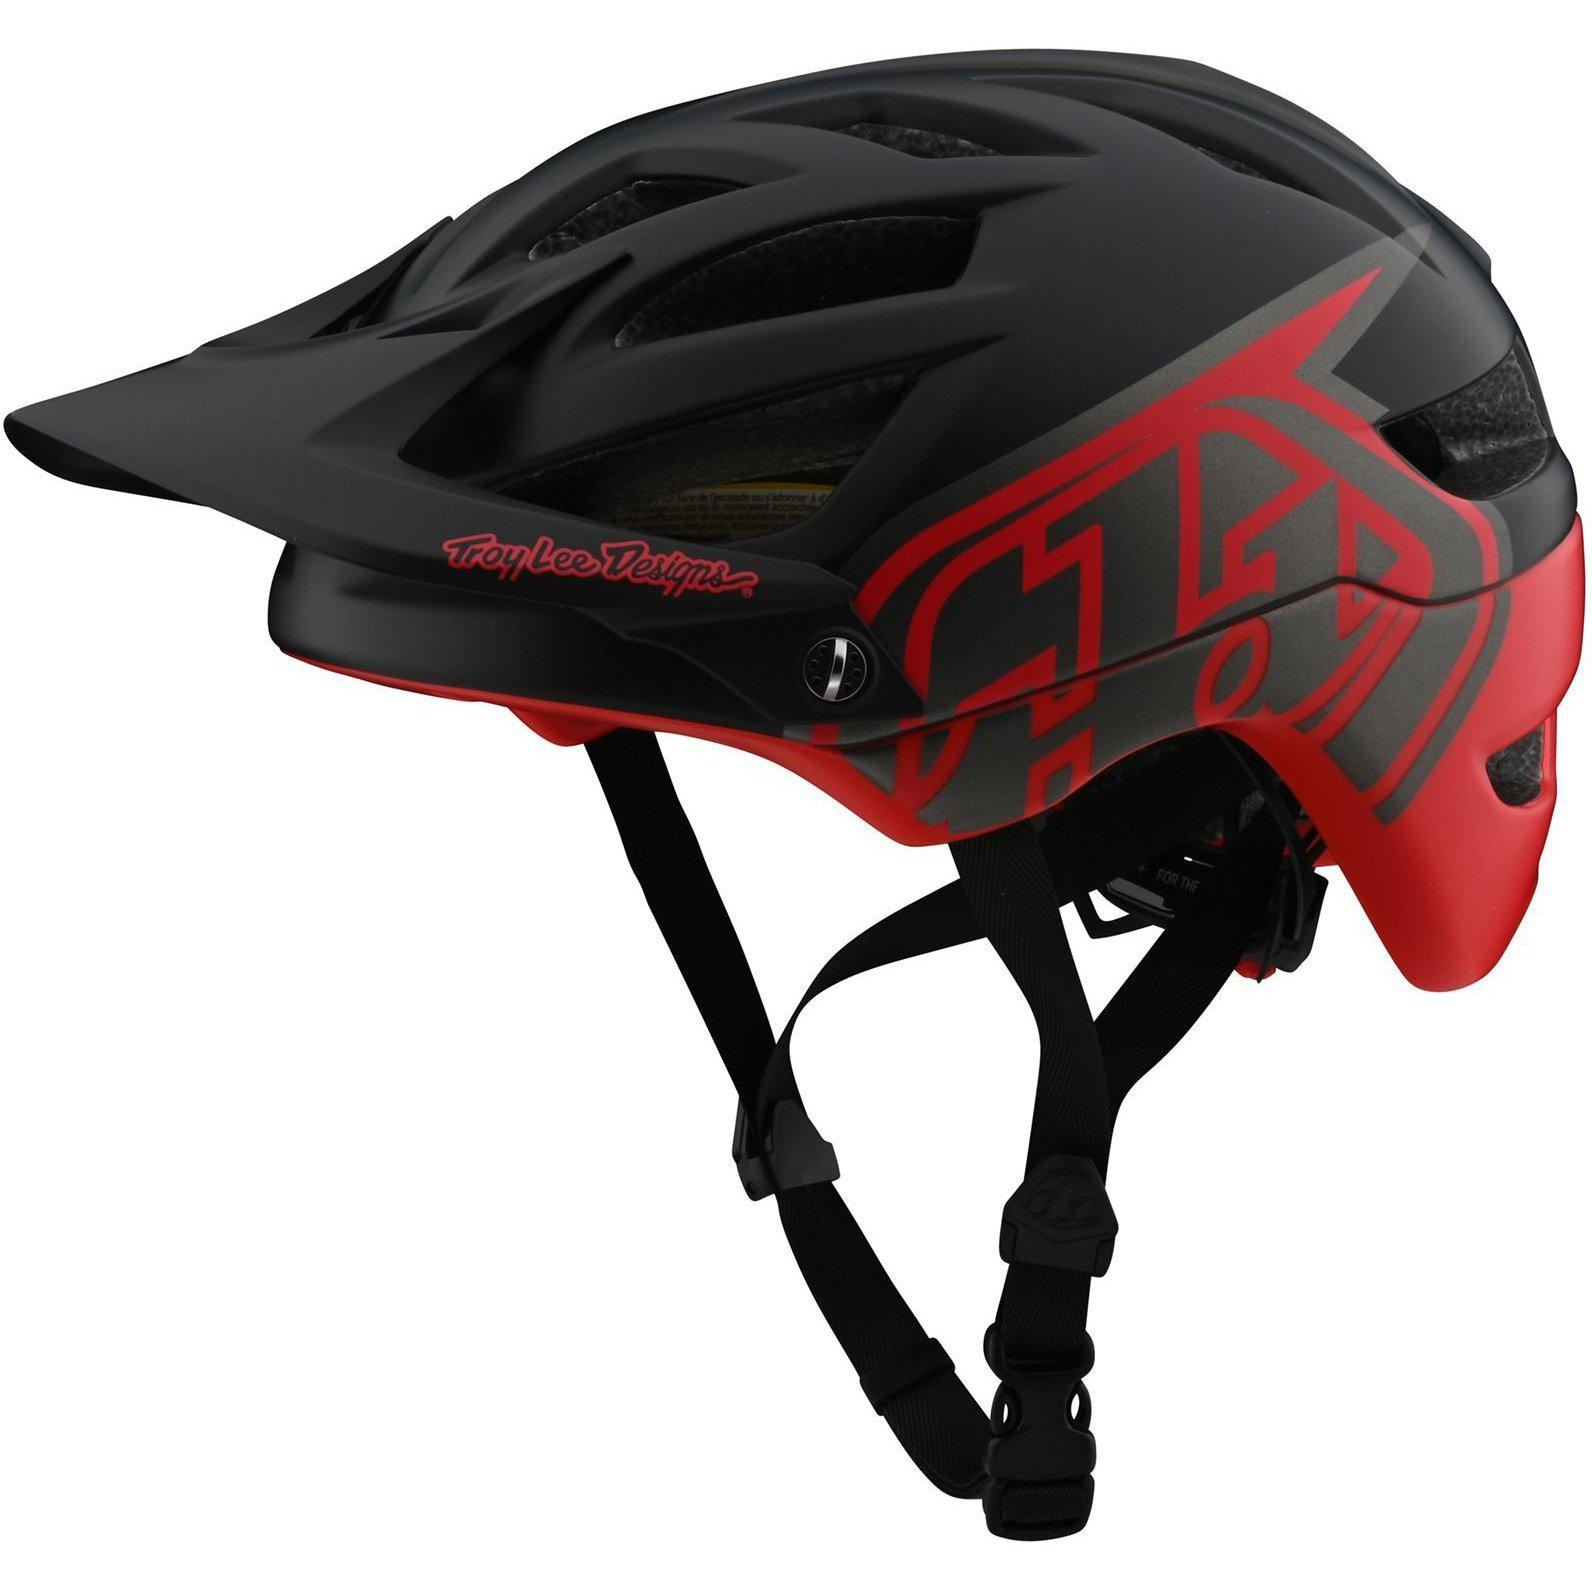 Troy Lee Designs-Troy Lee Designs A1 Classic MIPS Helmet-Classic - Black/Red-M/L-TLD190111163-saddleback-elite-performance-cycling